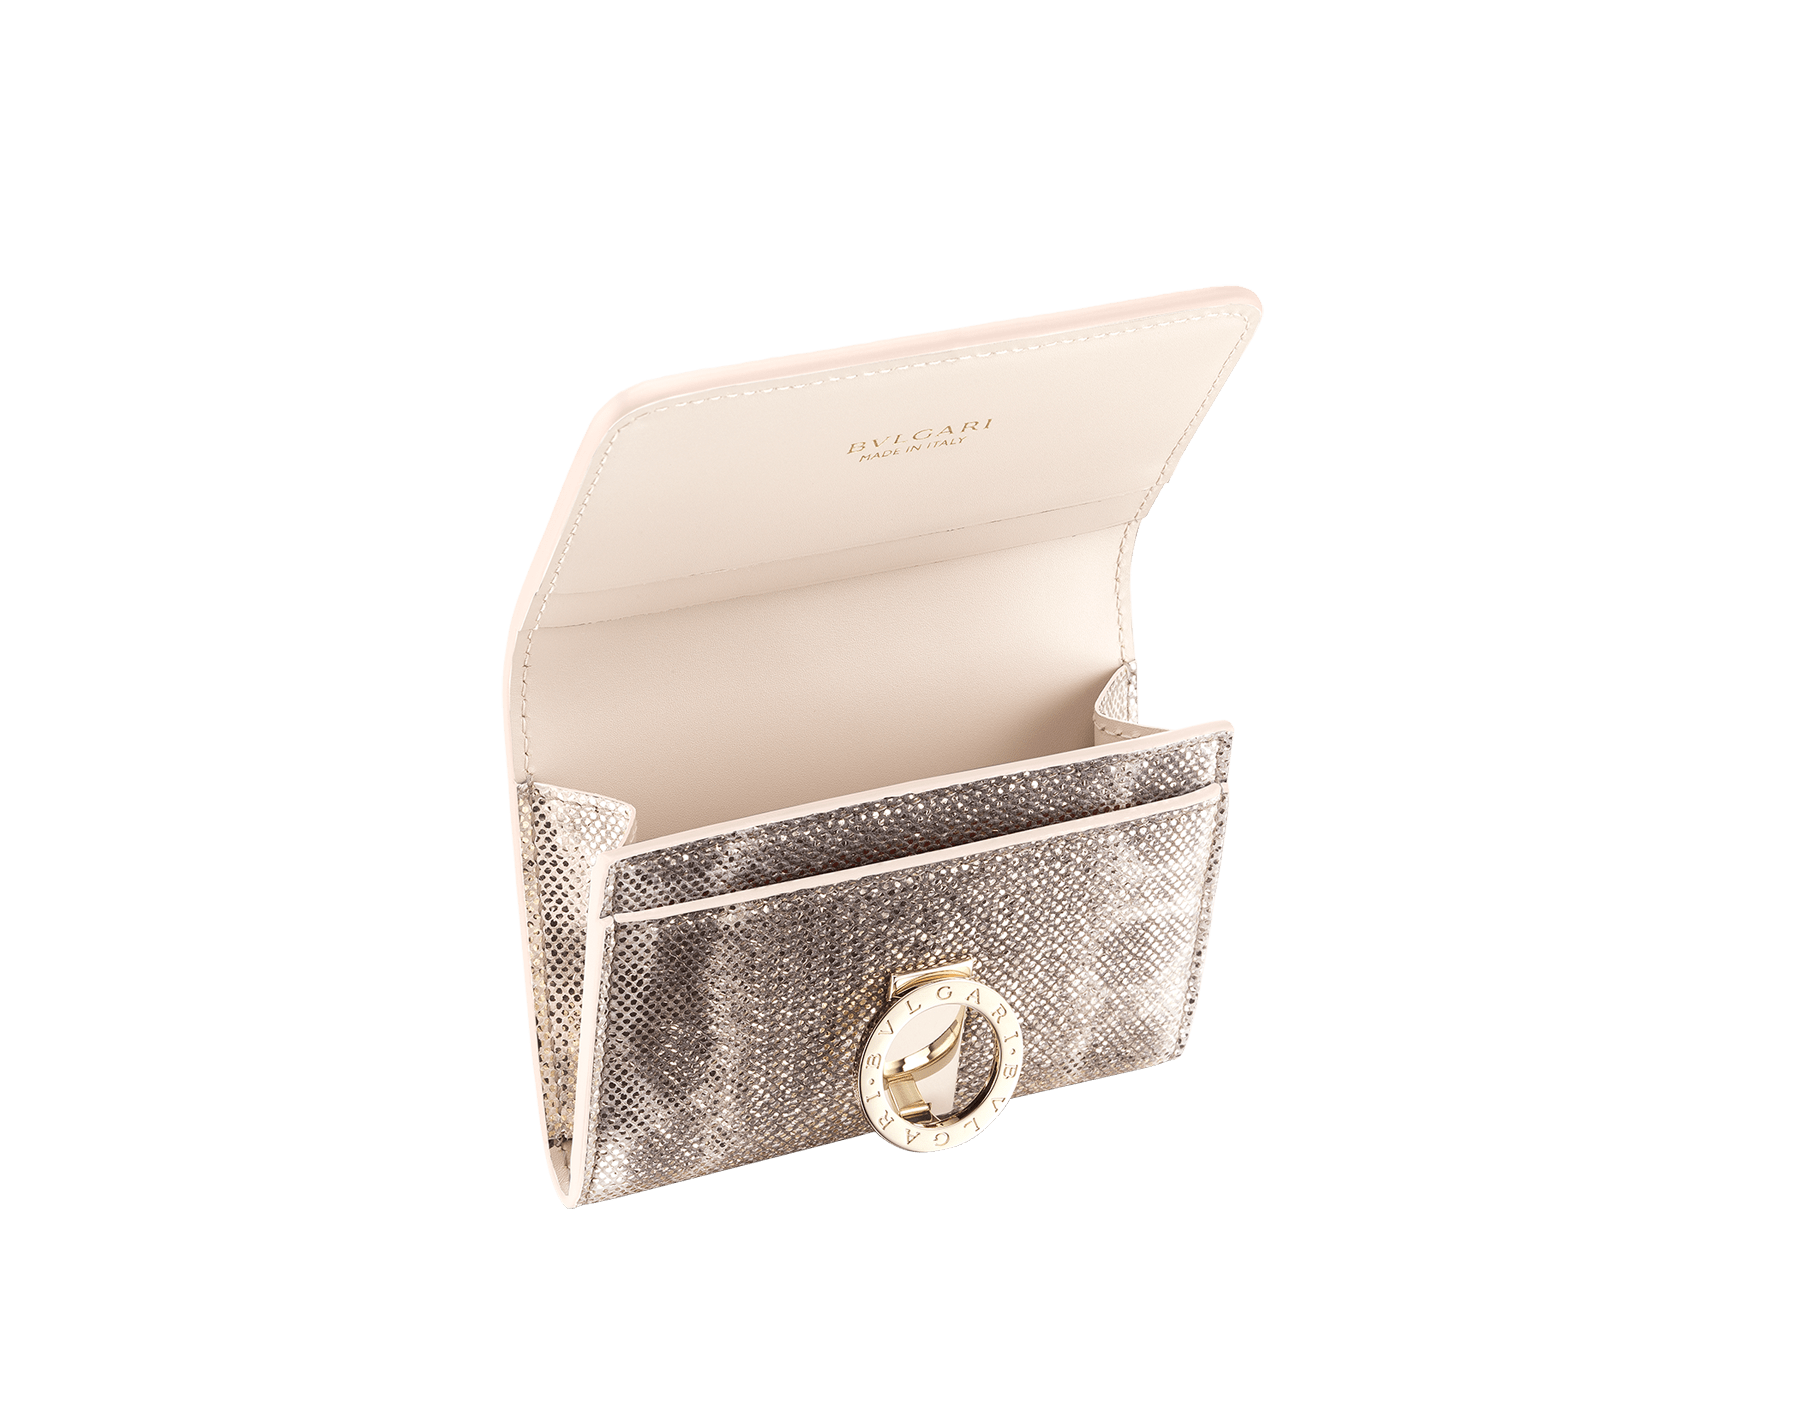 Business card holder in emerald green shiny karung skin and amethyst purple nappa. Iconic brass light gold plated clip featuring the BVLGARI BVLGARI motif. 579-BC-HOLDER-MK image 2